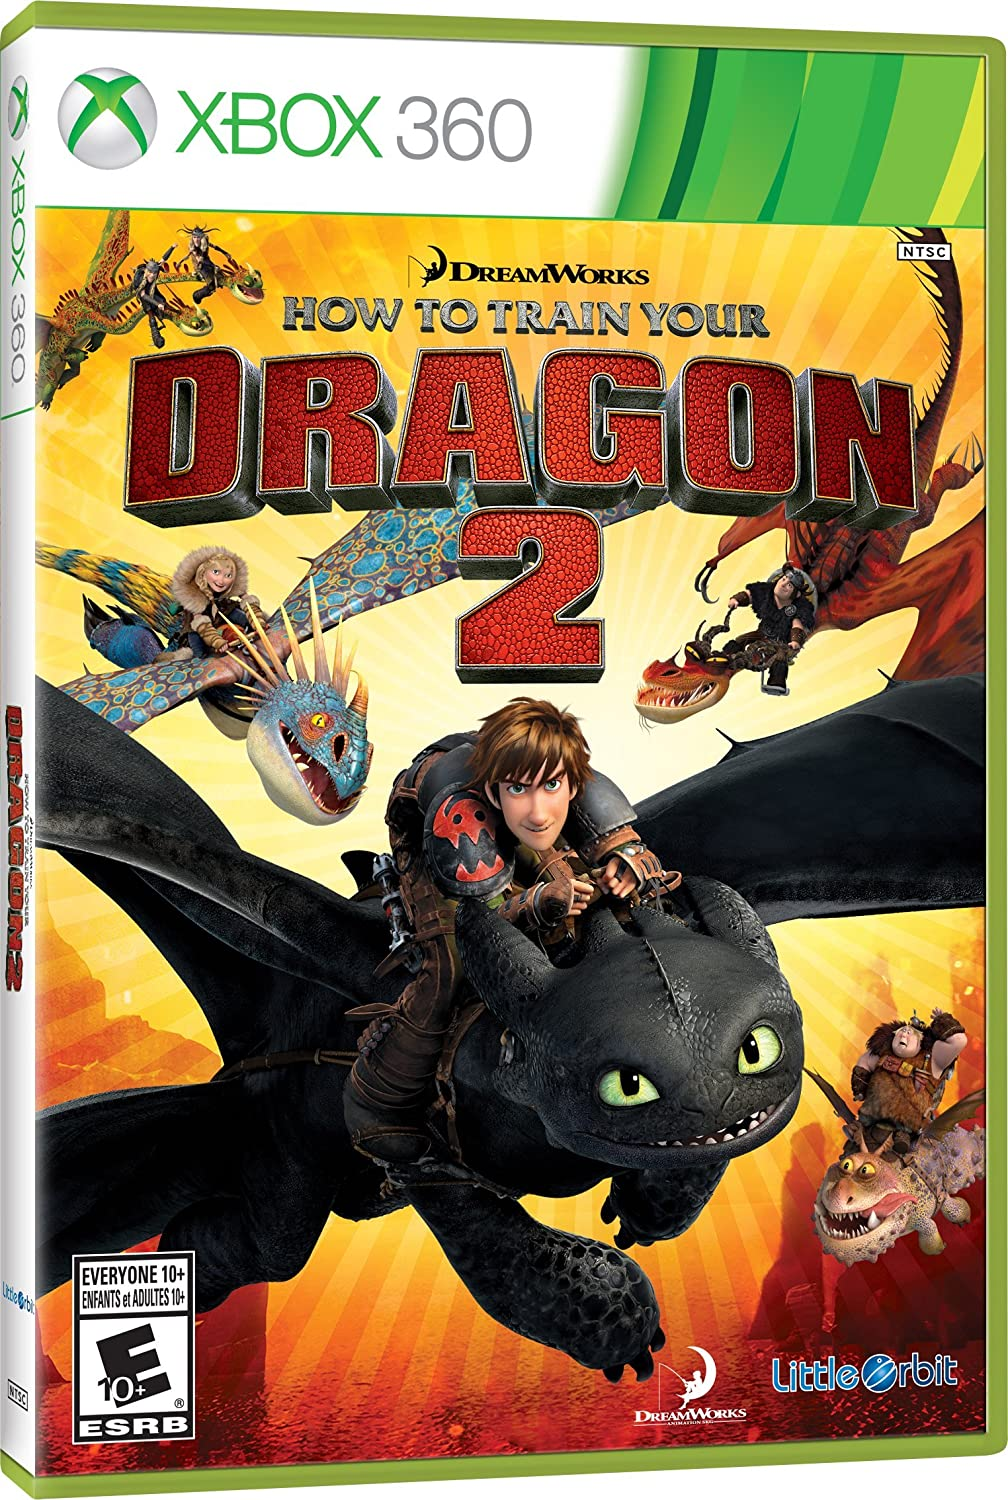 Amazon how to train your dragon 2 the video game nintendo amazon how to train your dragon 2 the video game nintendo 3ds solutions 2 go inc video games ccuart Images